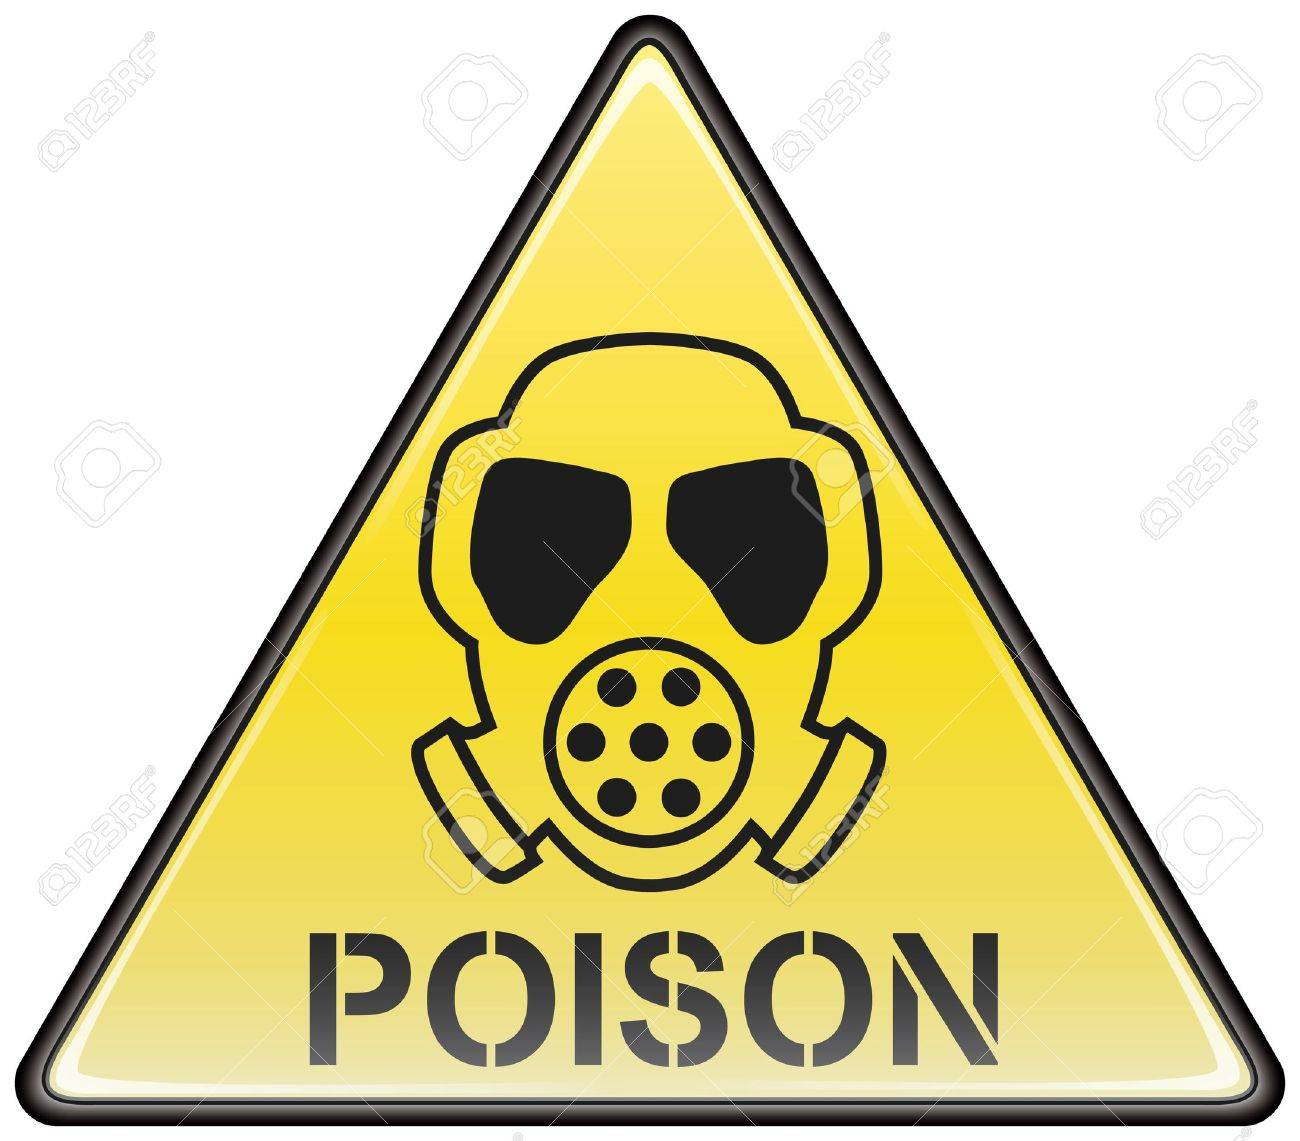 Poison gas mask vector triangle hazardous sign royalty free poison gas mask vector triangle hazardous sign stock vector 8504311 biocorpaavc Image collections